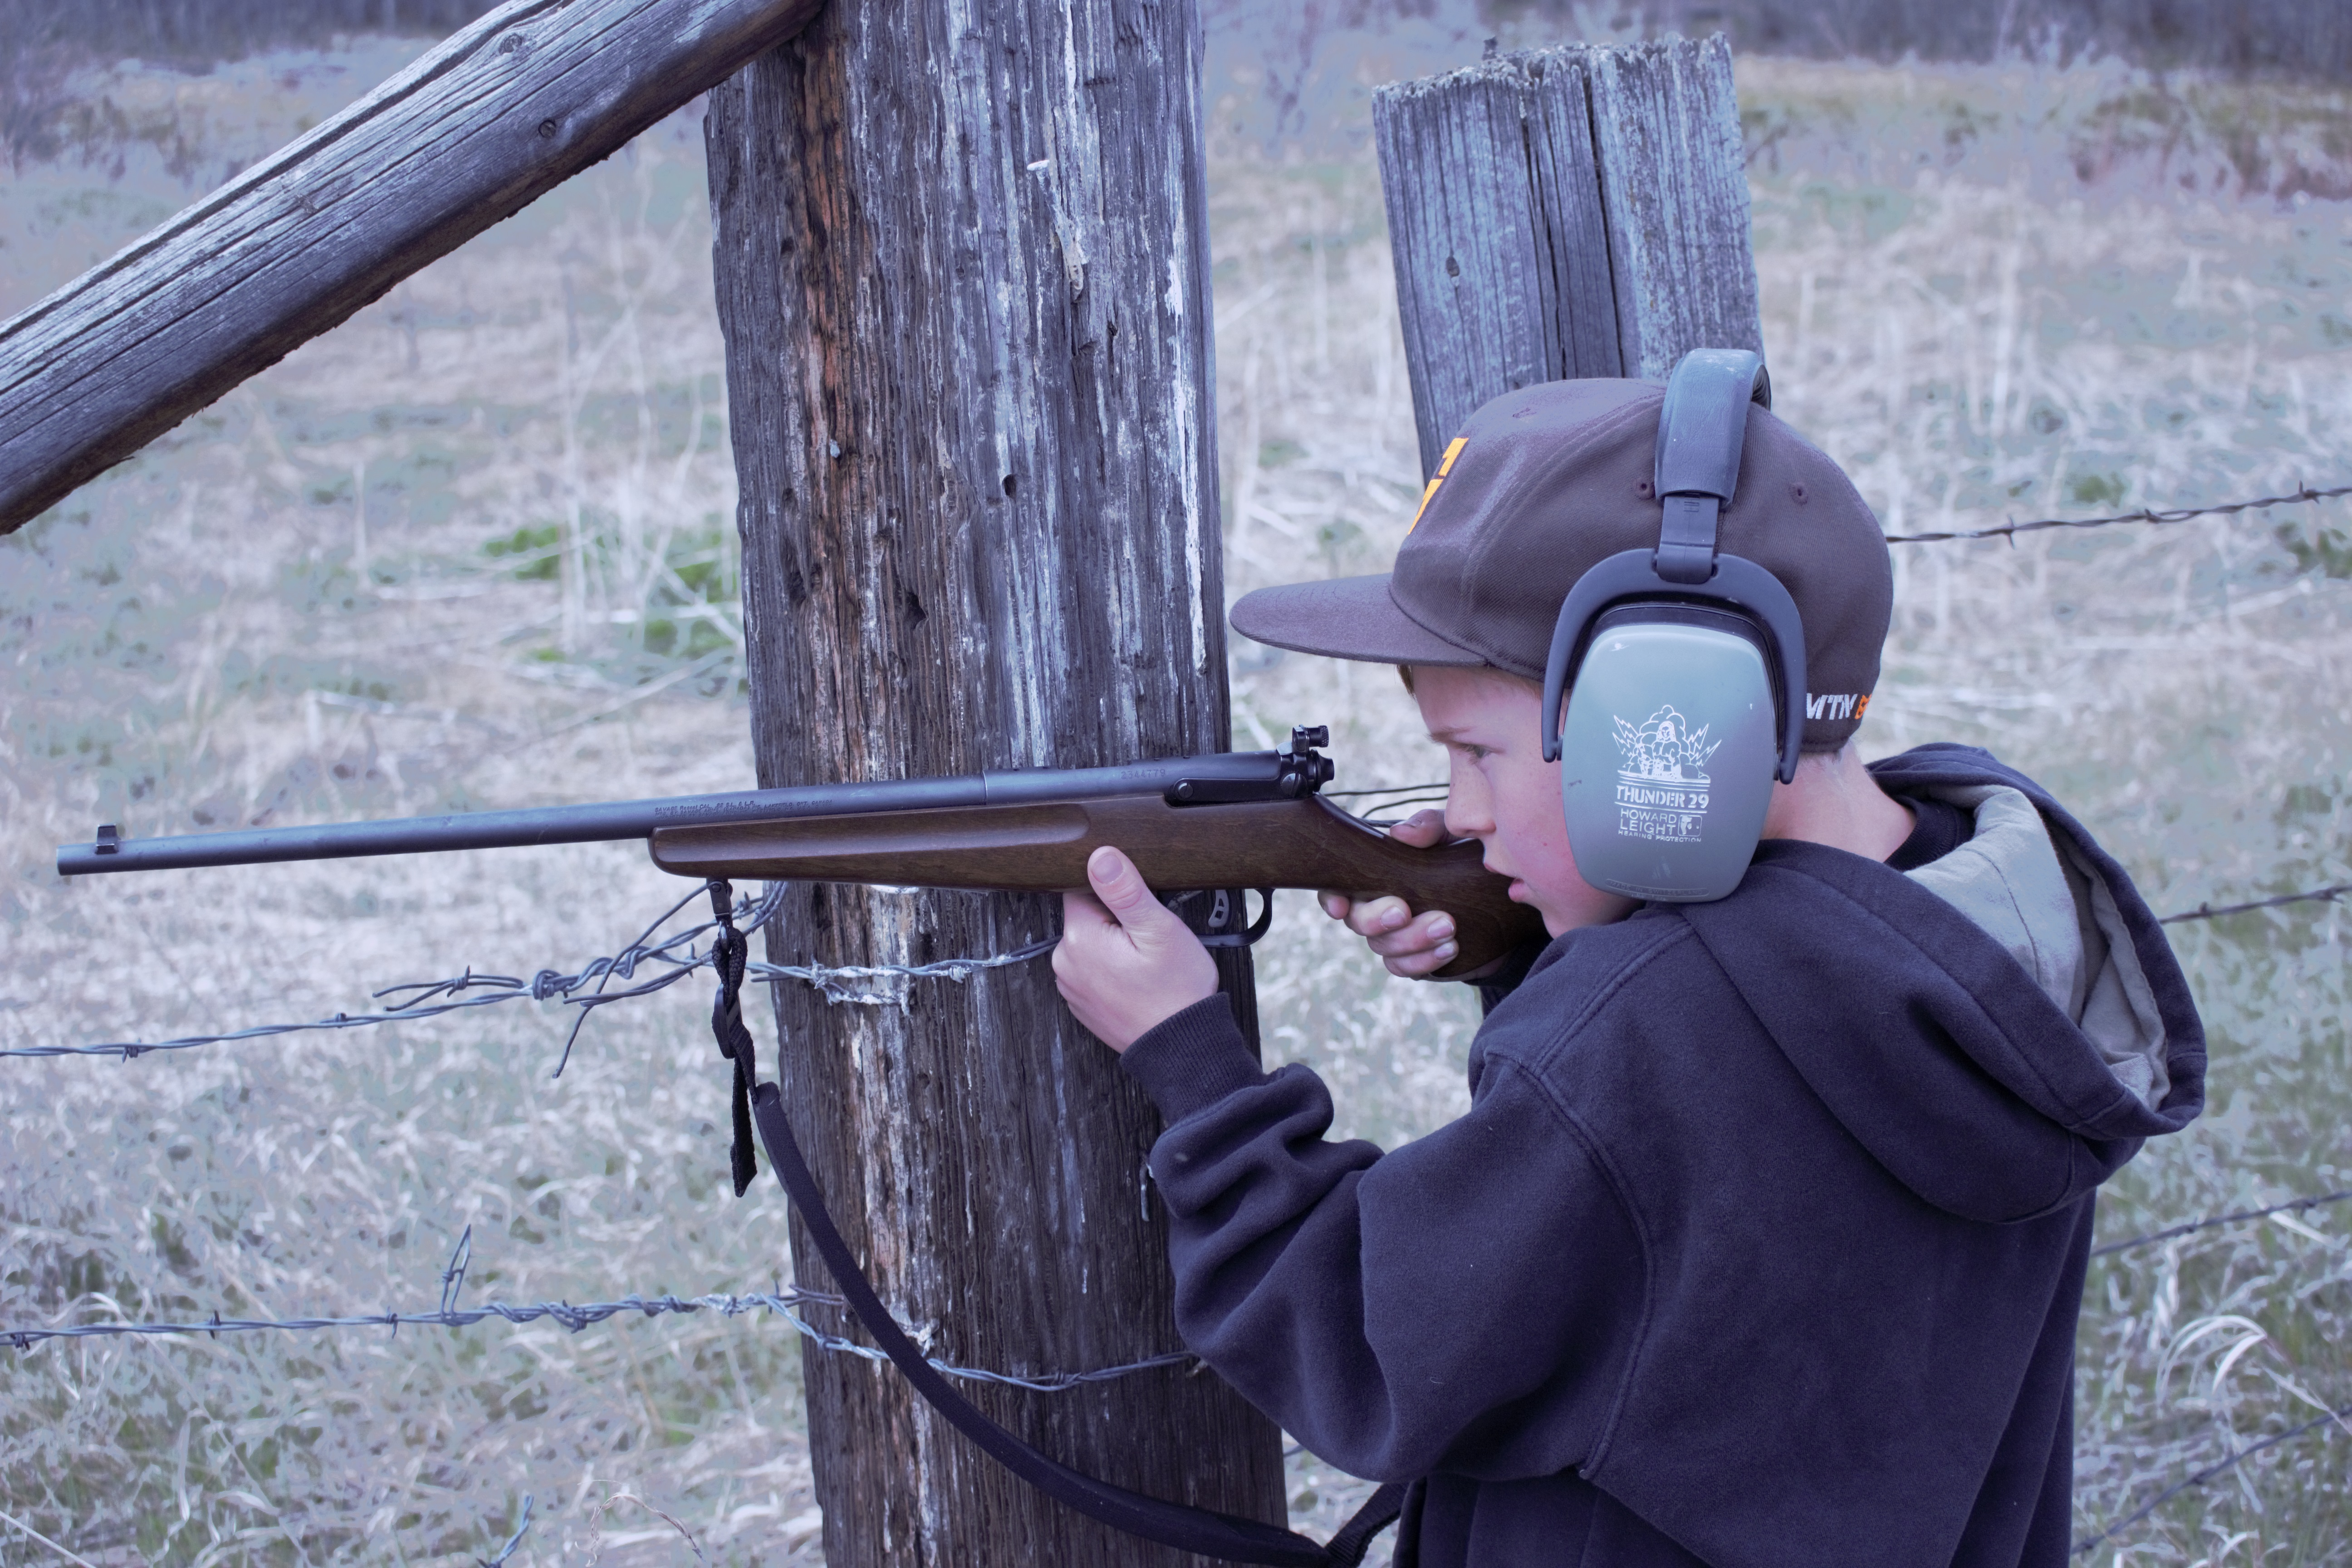 teaching kids gun safety, kids guns, gun safety, getting your kid started shooting